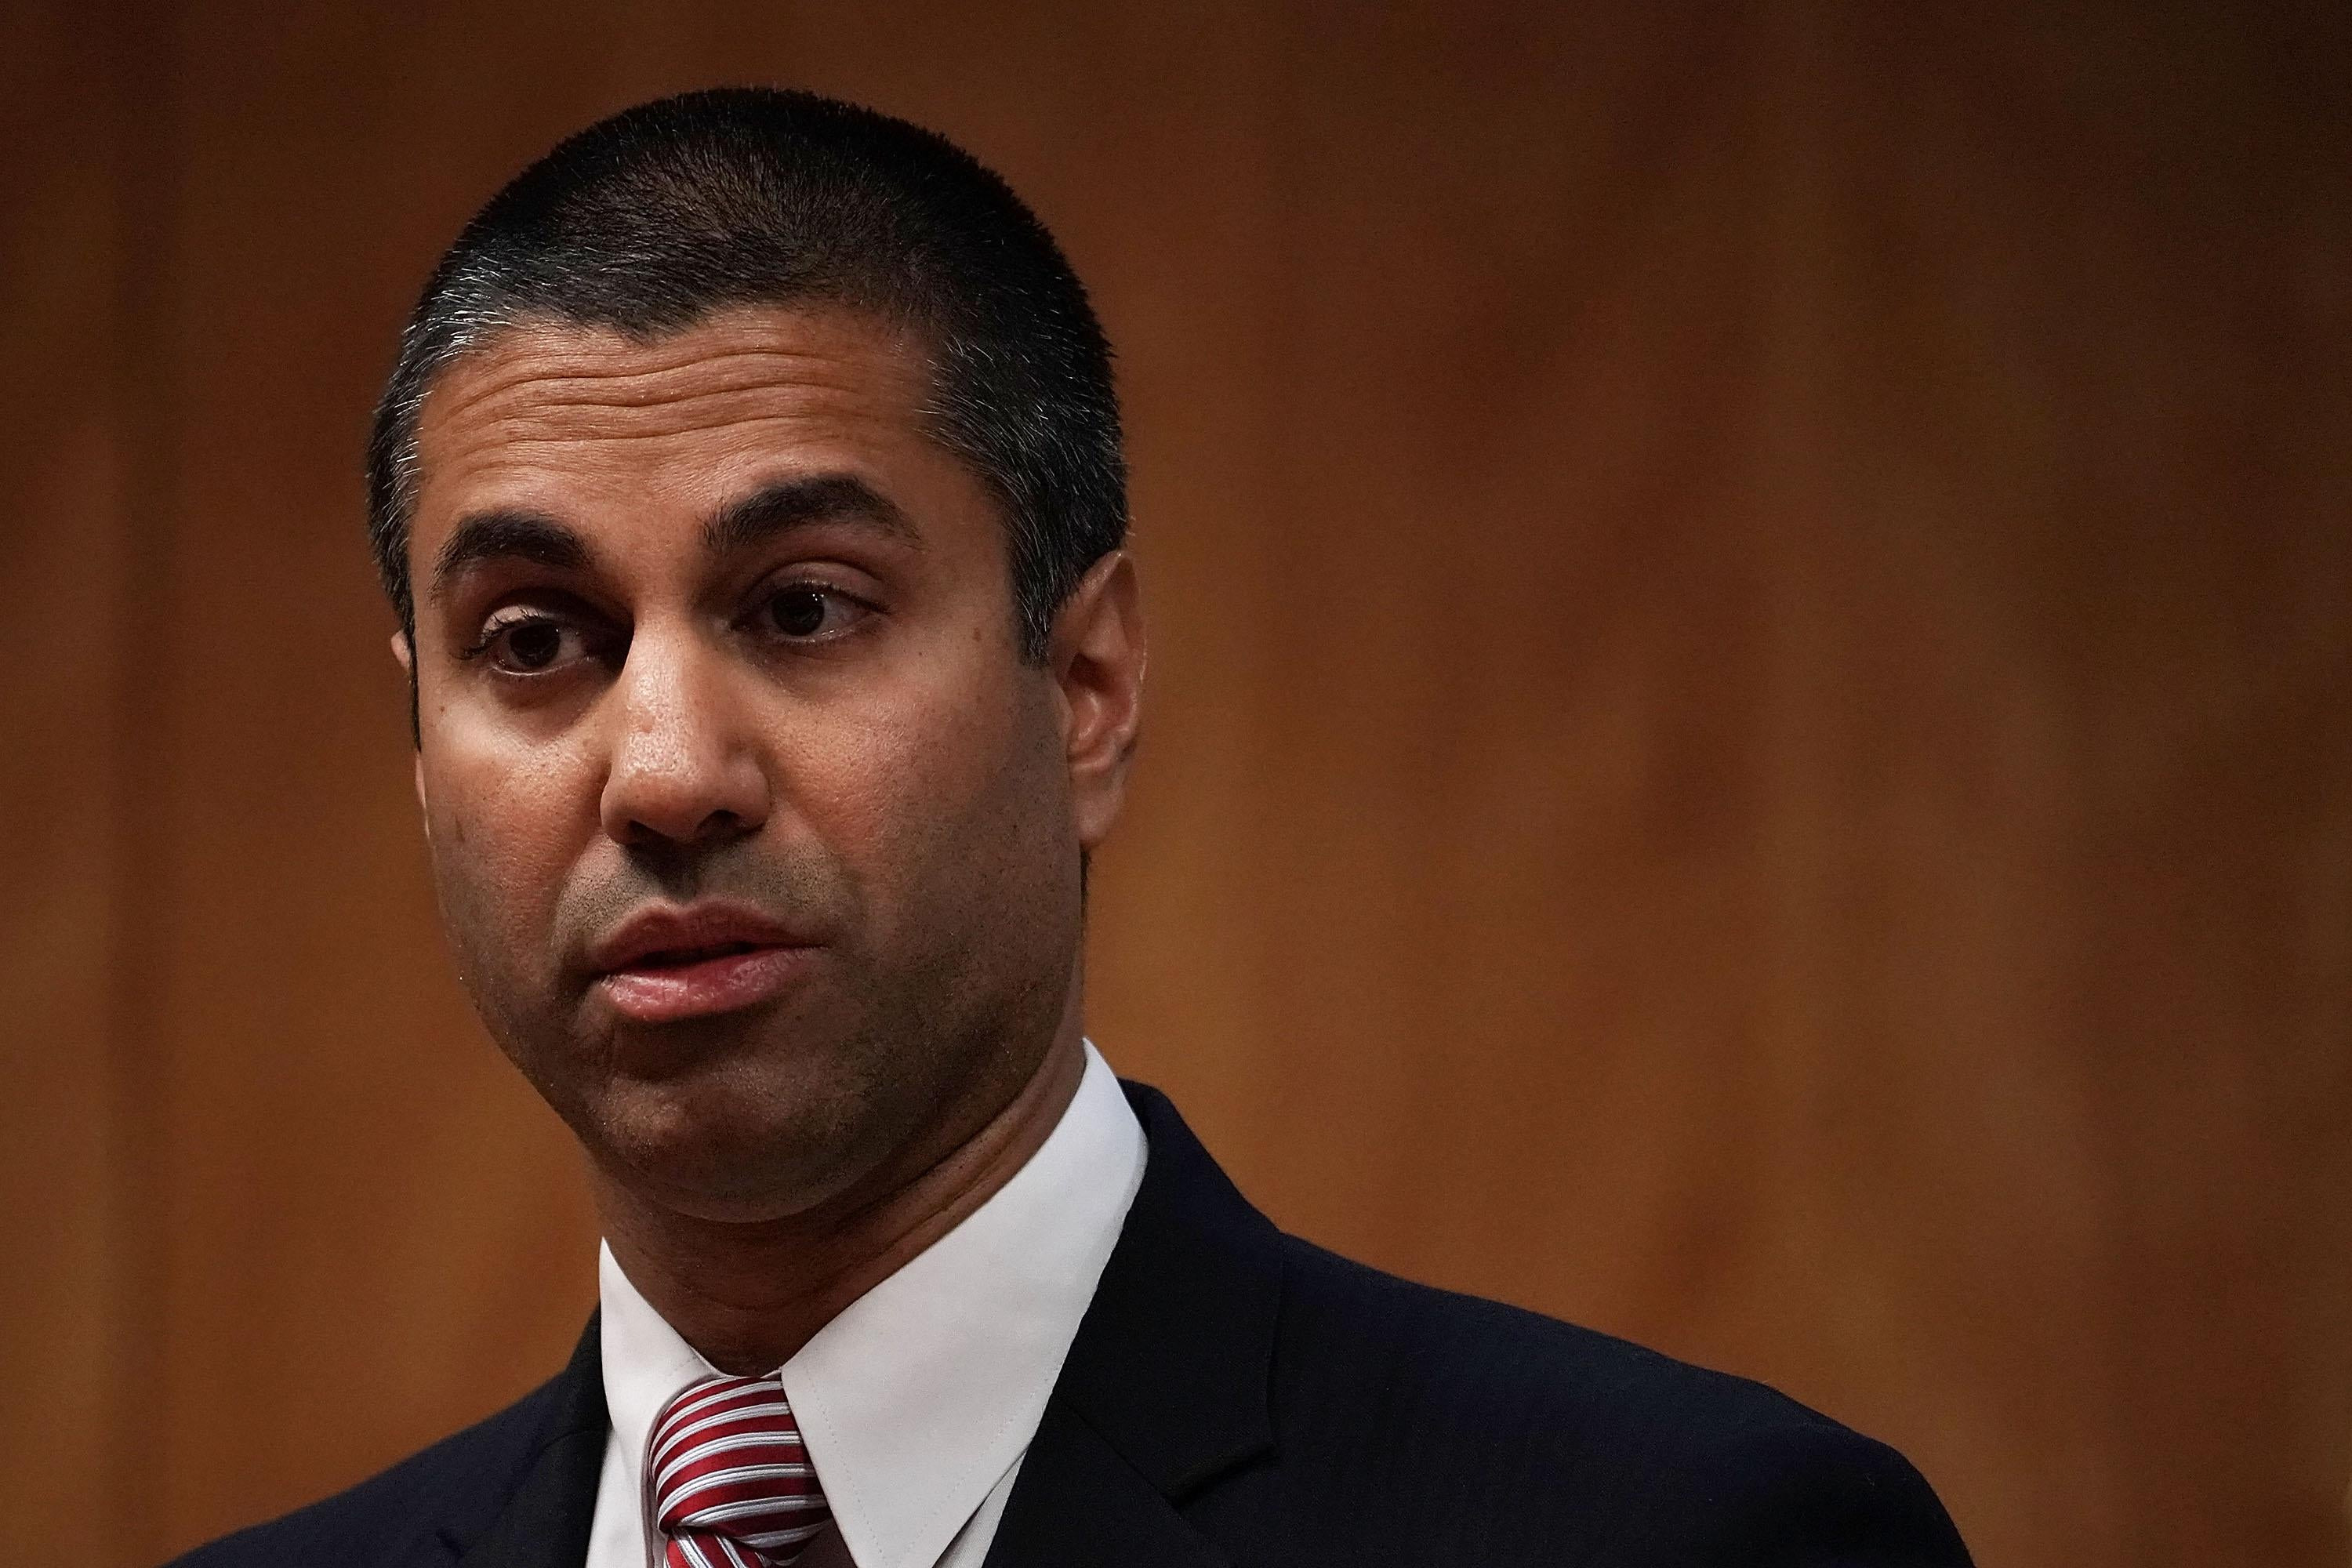 Even Pai's corporate supporters, like Verizon and Sprint, think it's a bad idea.